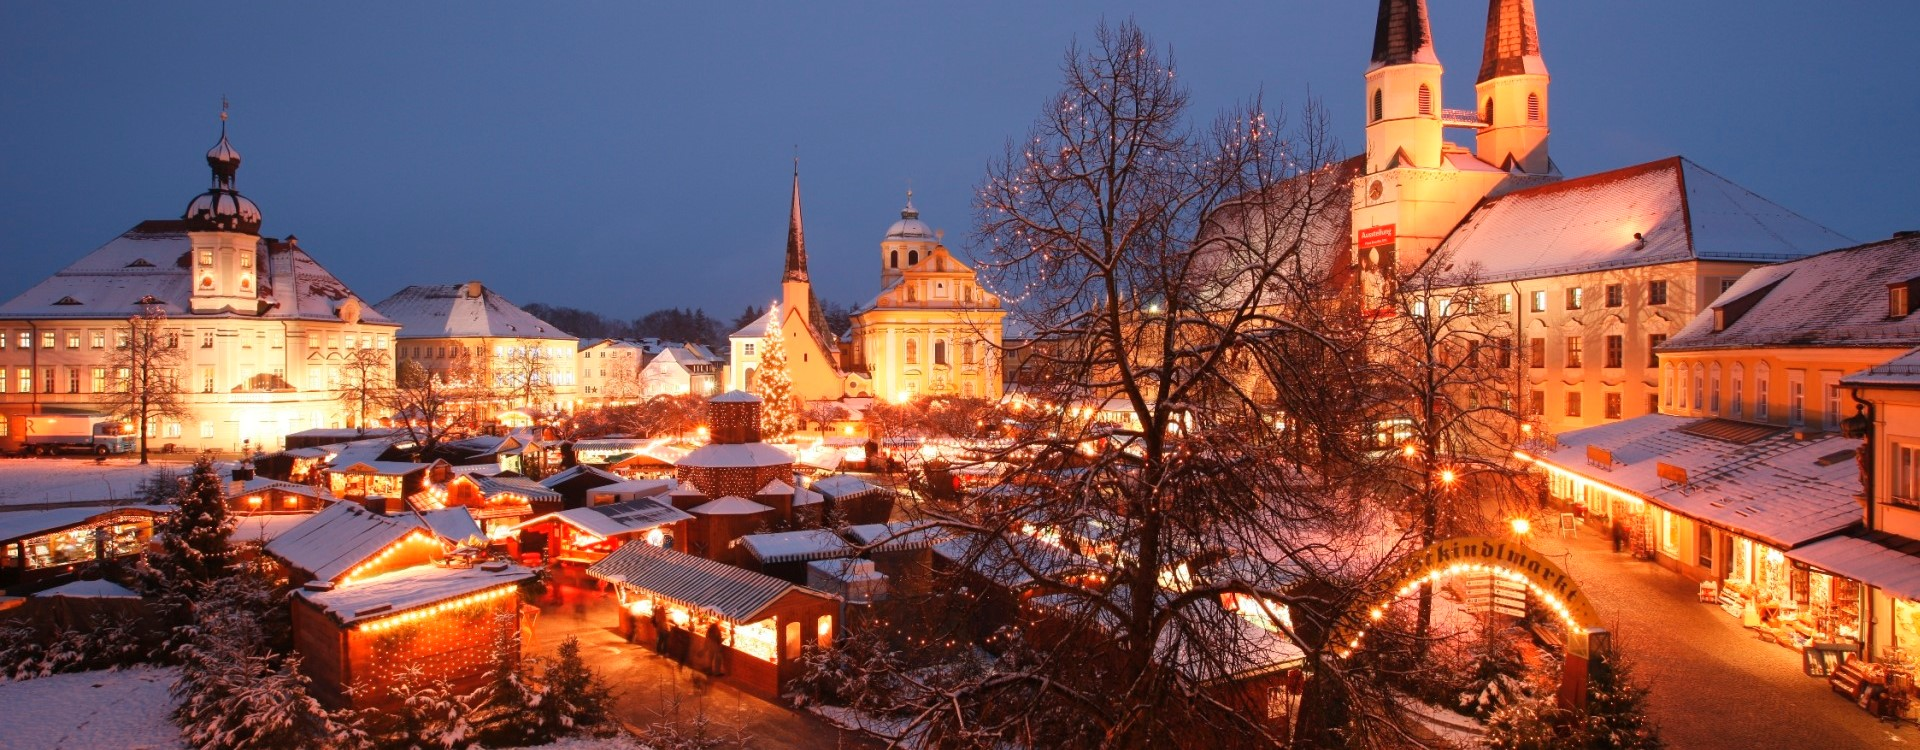 Der Altöttinger Christkindlmarkt am Kapellplatz.